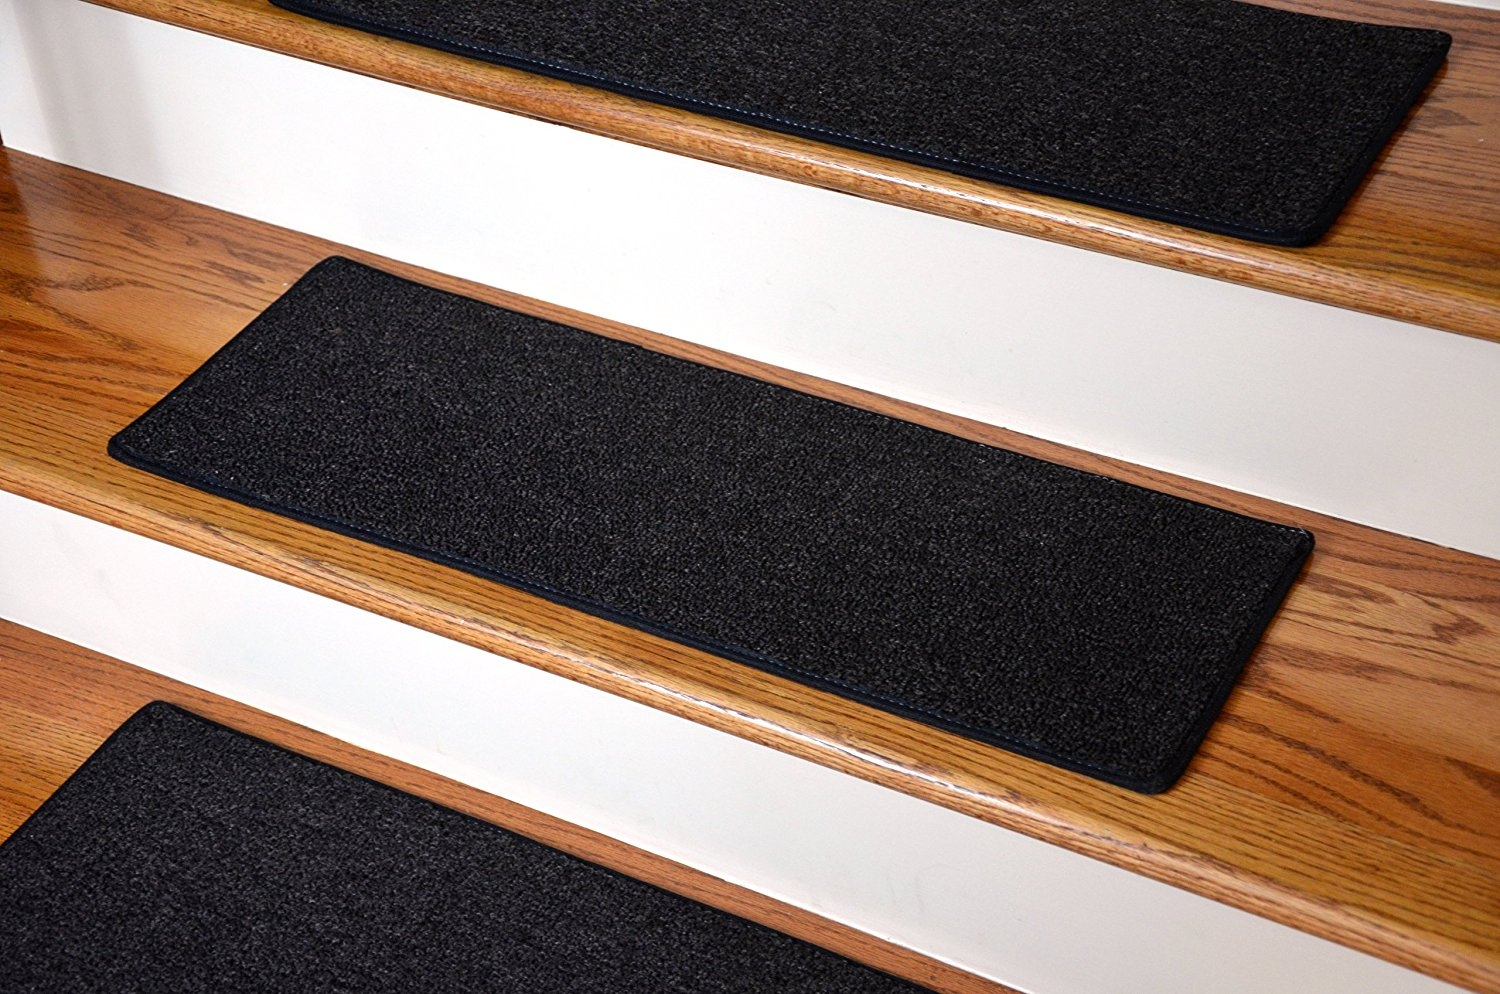 Dean Non Slip Tape Free Pet Friendly Diy Carpet Stair Treadsrugs Within Carpet Stair Treads Non Slip (View 13 of 20)